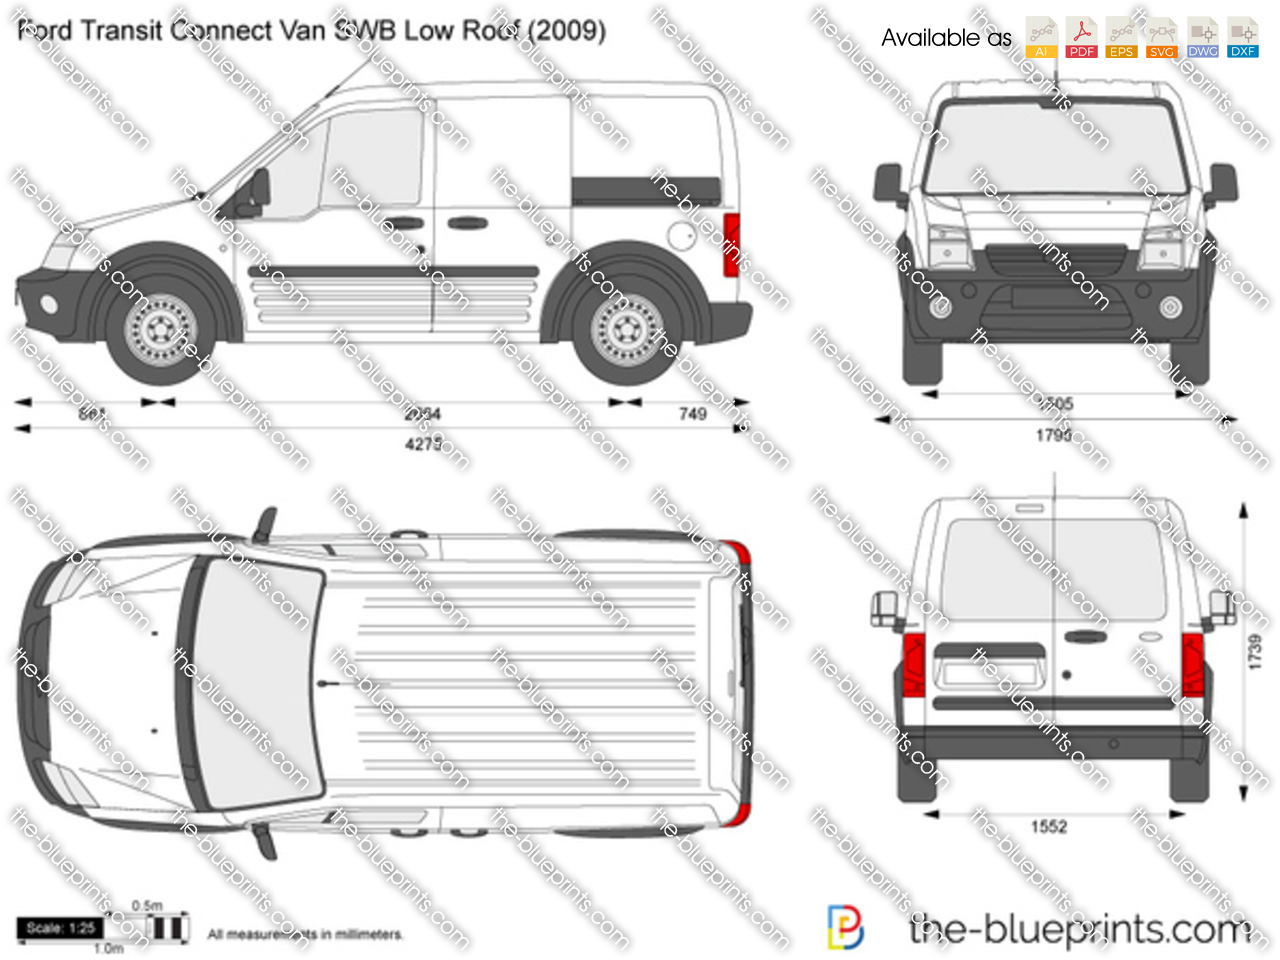 Ford Transit Connect Van SWB Low Roof